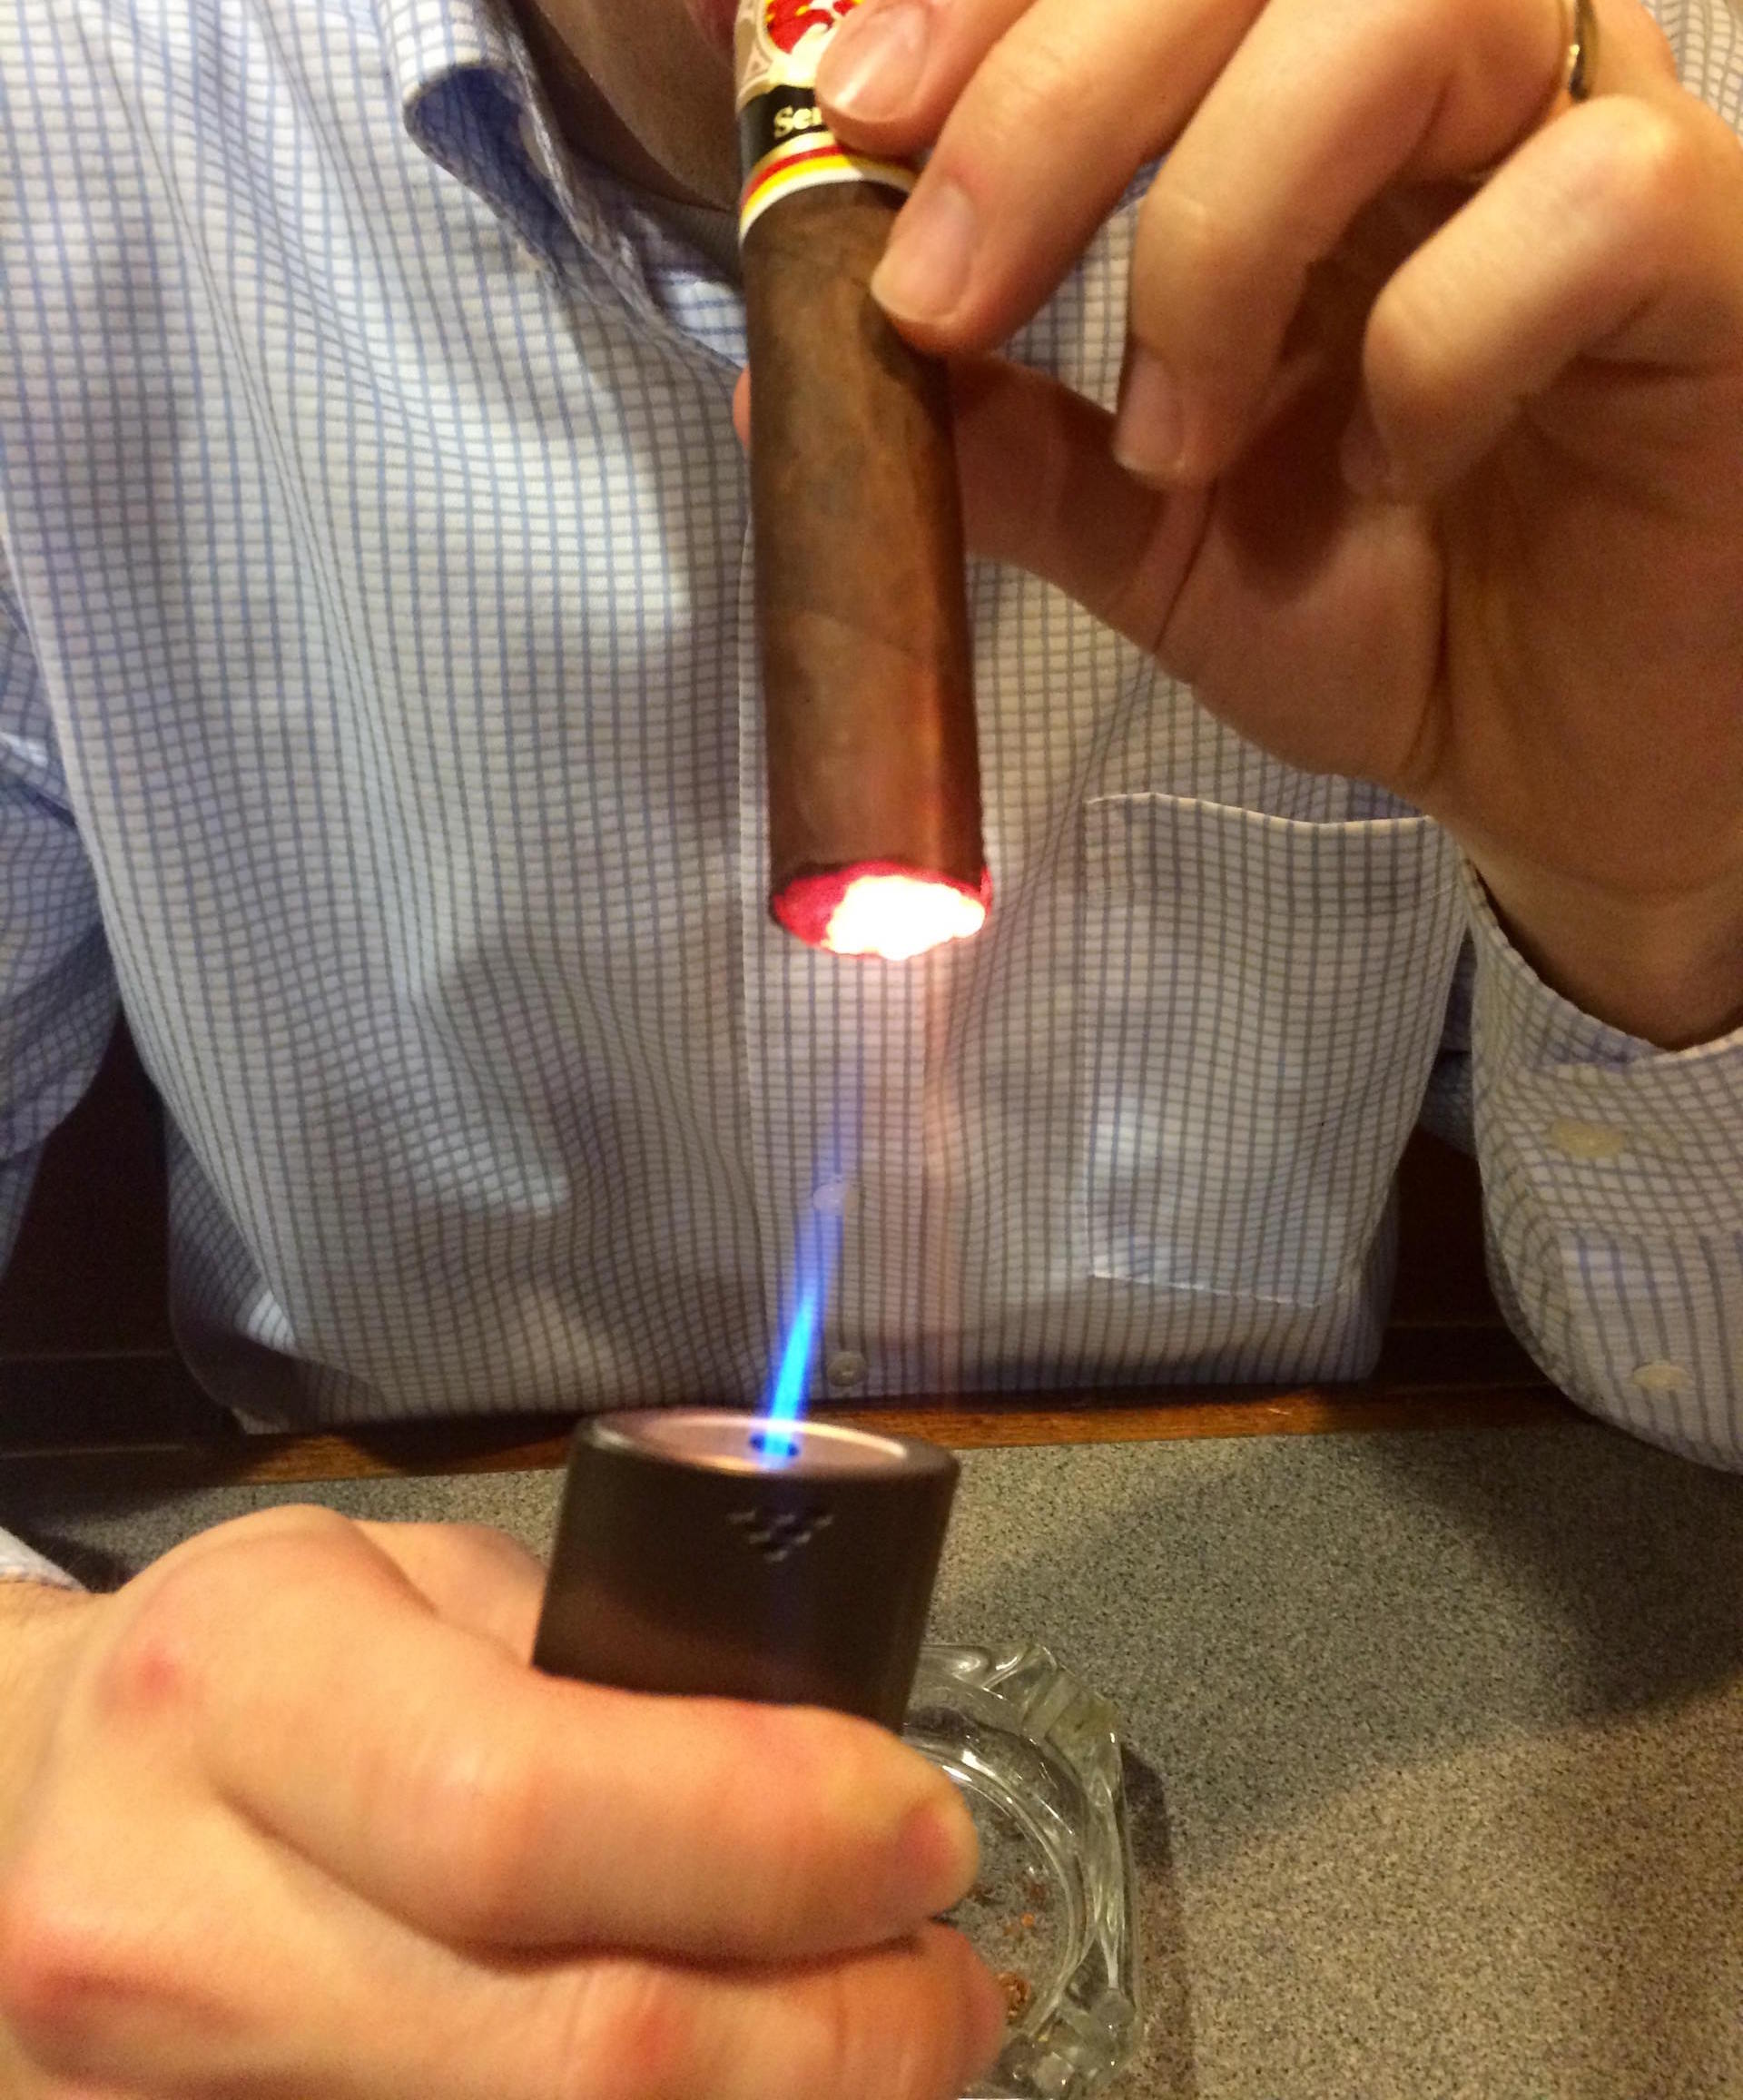 Lighting the La Gloria Cubana Serie RF No. 13 cigar by Aaron Aiken from the Harrisburg Cigar Club